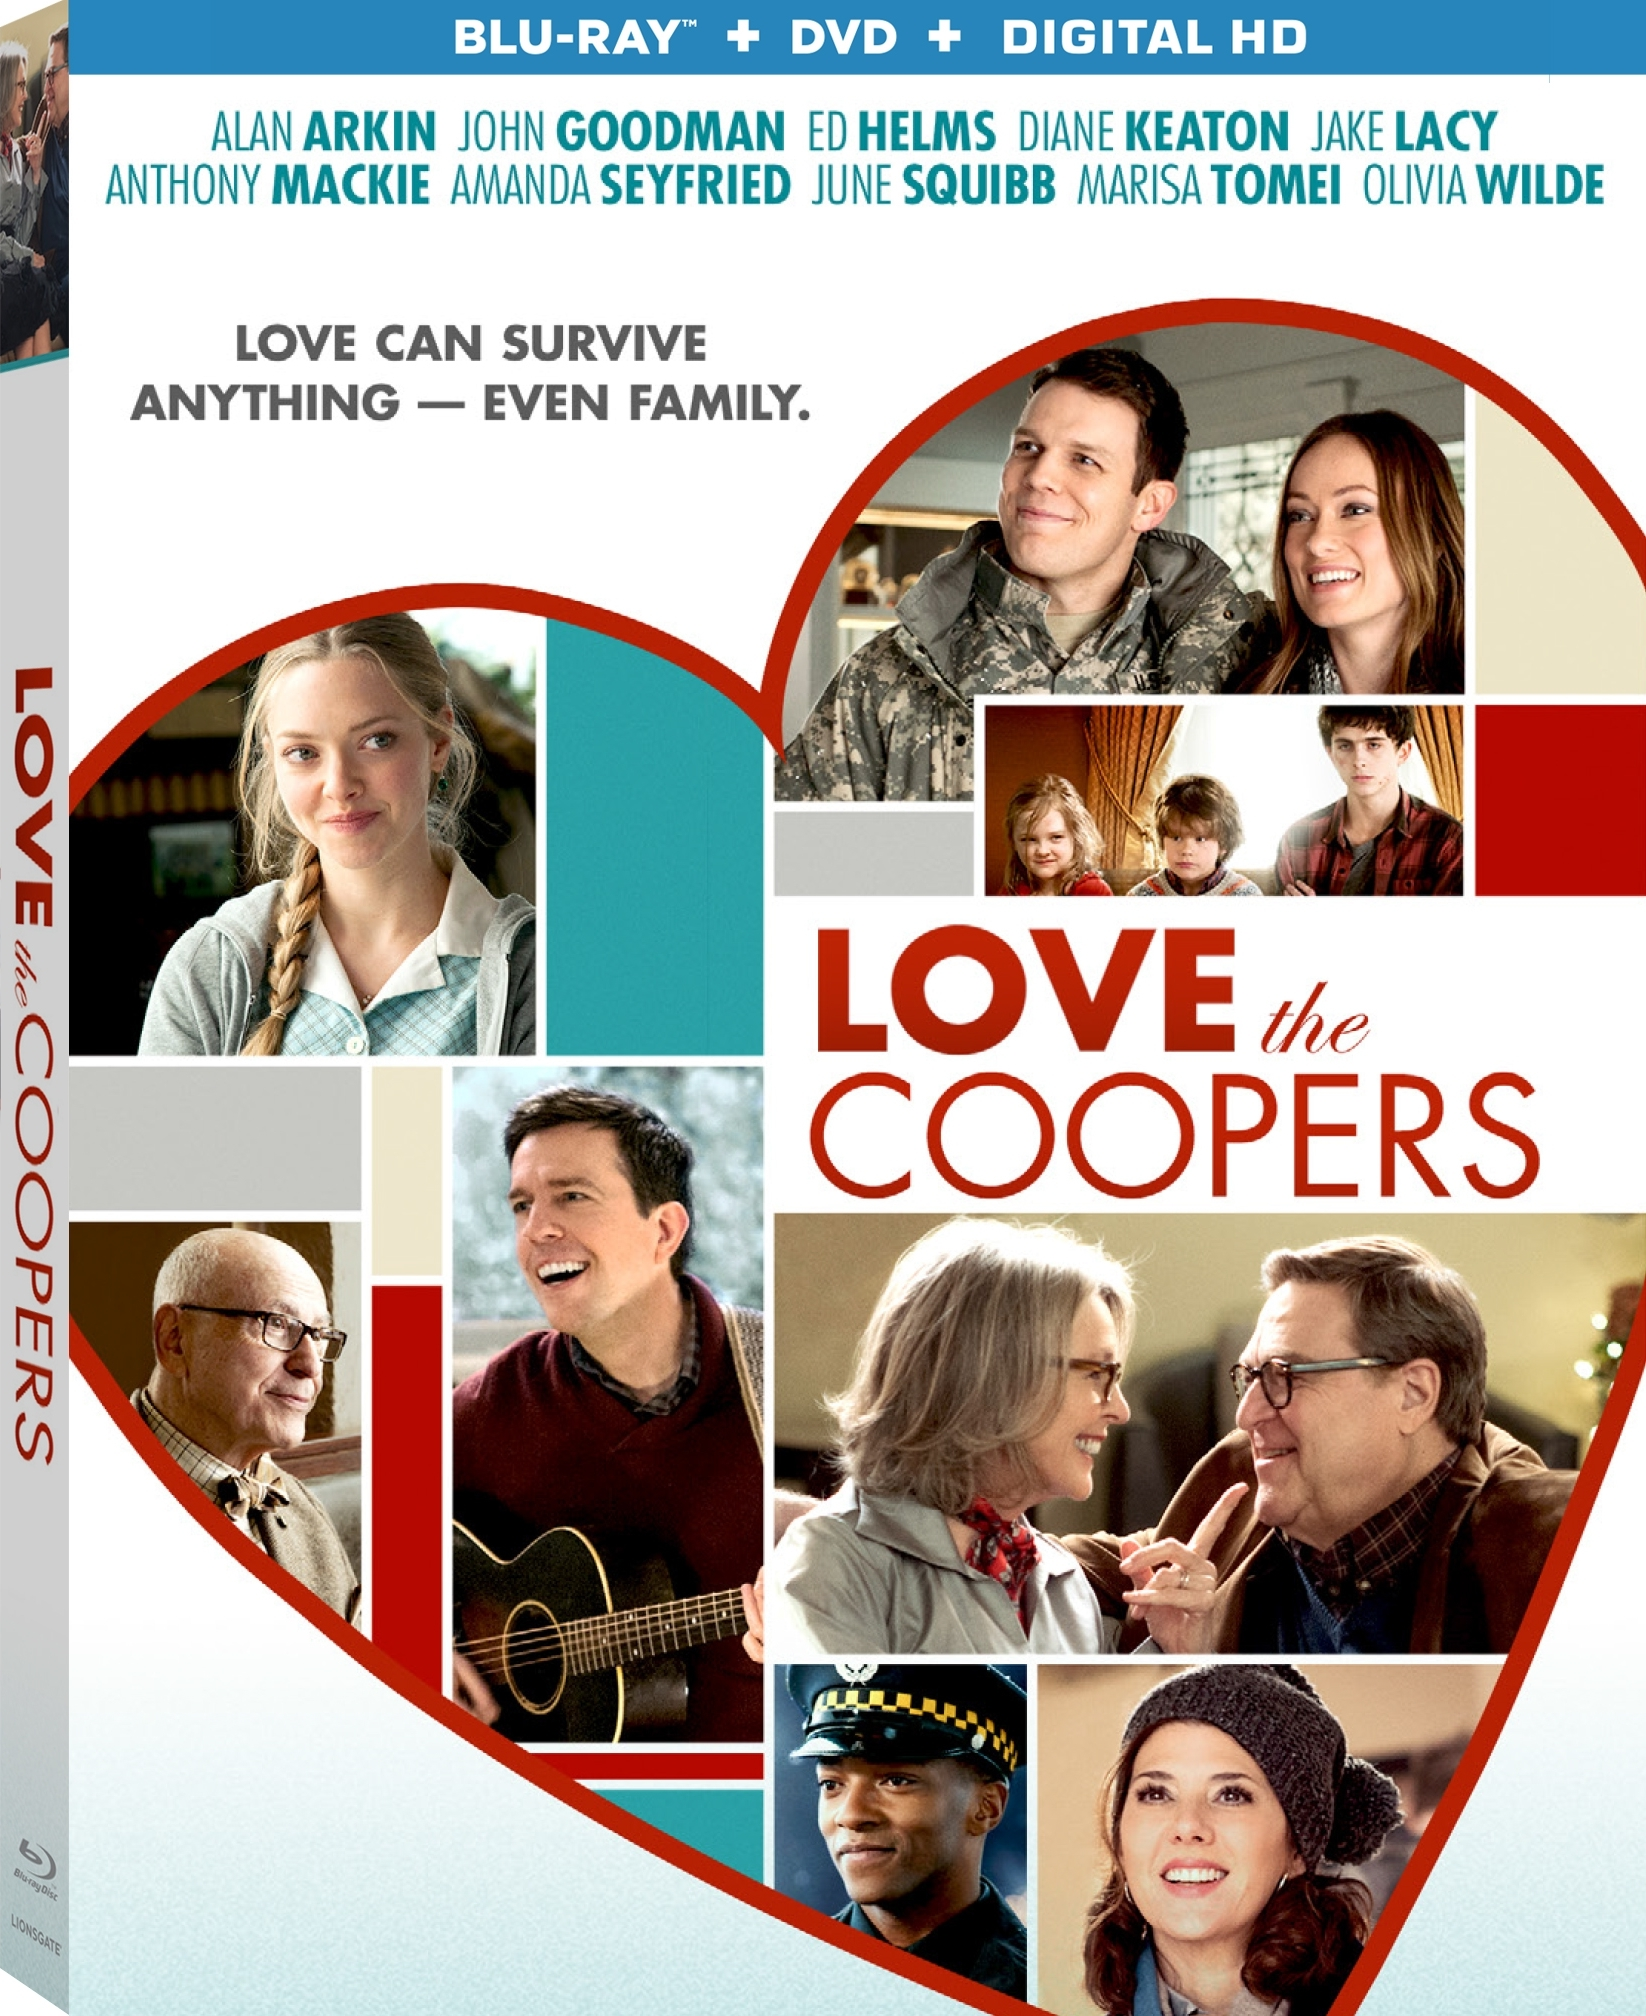 Love the Coopers (2015) Blu-ray